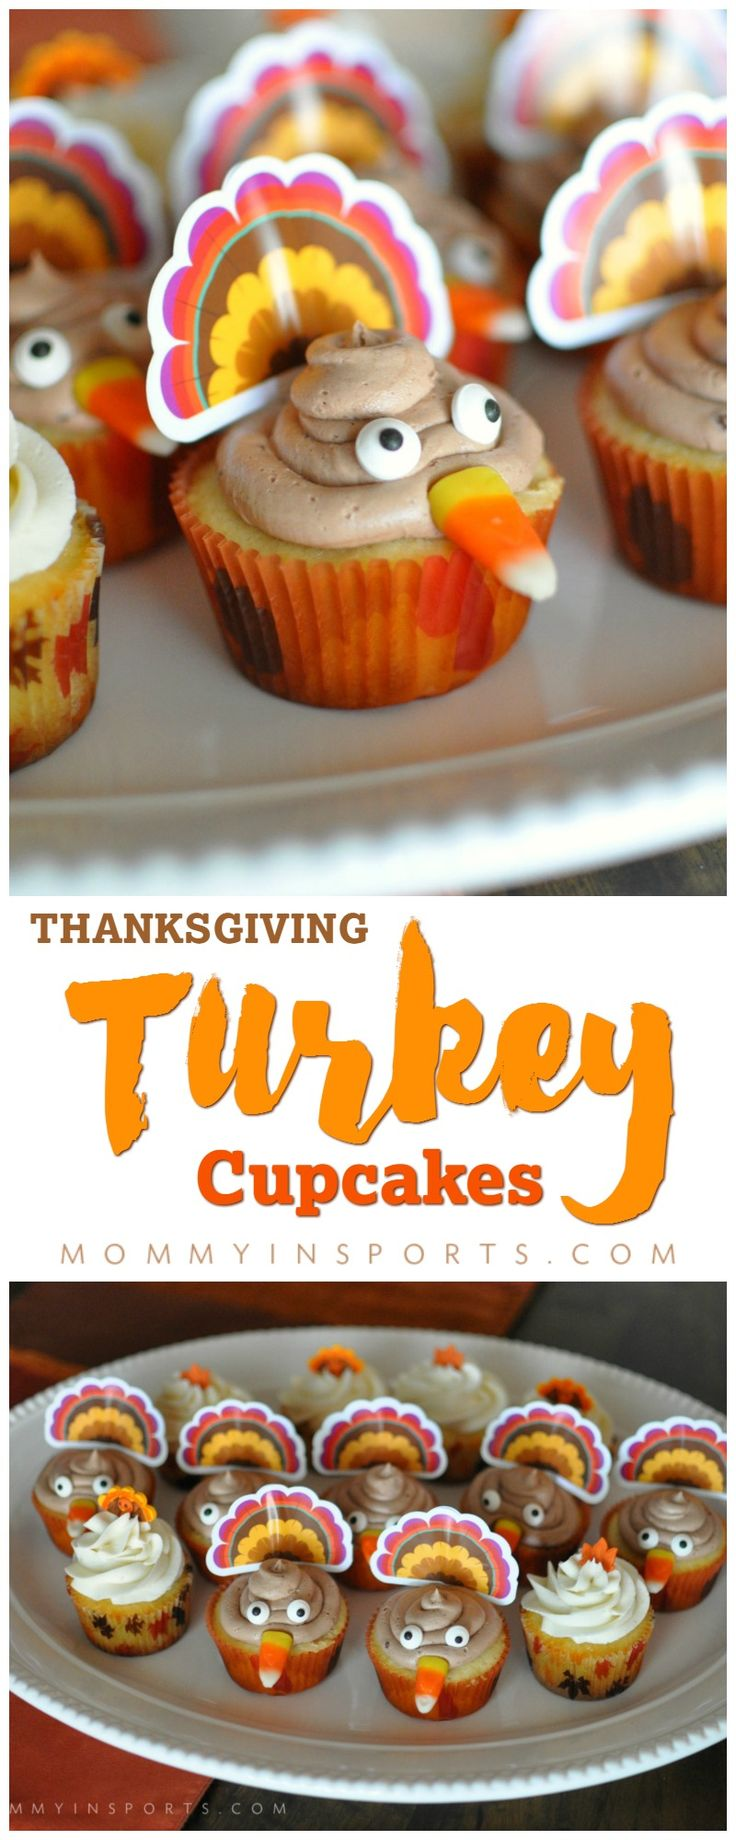 While the rest of the country devours silky pumpkin pies or other traditional holiday desserts, I'm always looking for something fun on Thanksgiving. I make cupcakes all the time for Halloween, New Year's Eve, or